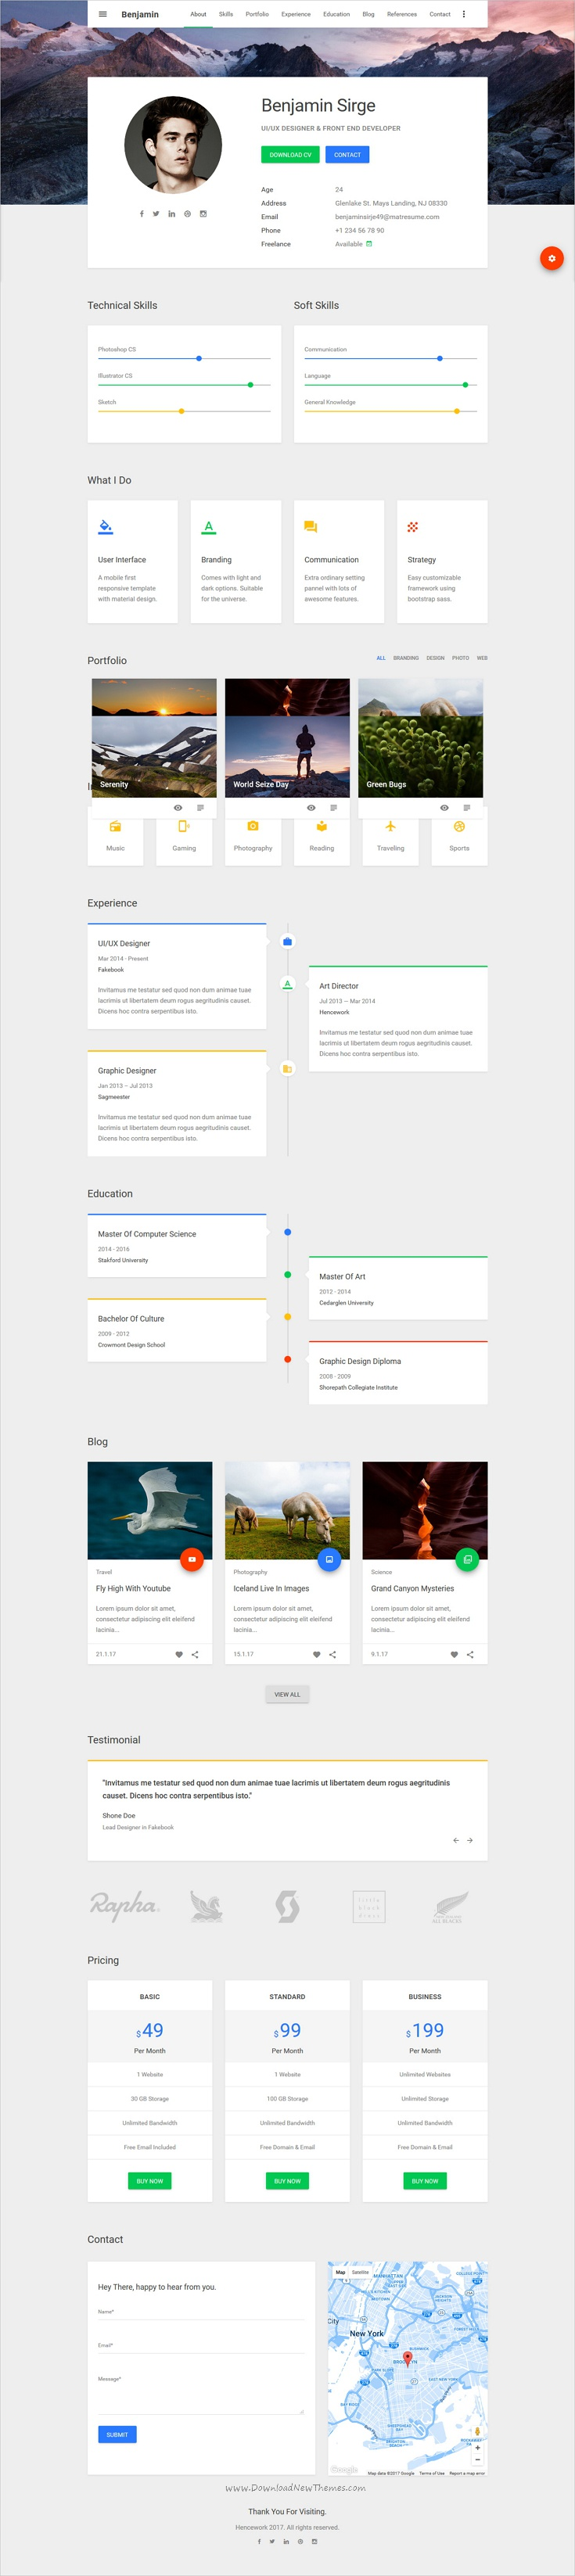 Lovely 1 Circle Template Huge 10 Best Resumes Square 10 Hour Schedule Templates 10 Steps To Creating An Effective Resume Old 10 Words Not To Put On Your Resume Fresh100 Dollar Bill Template  Portfolio Html Template ..